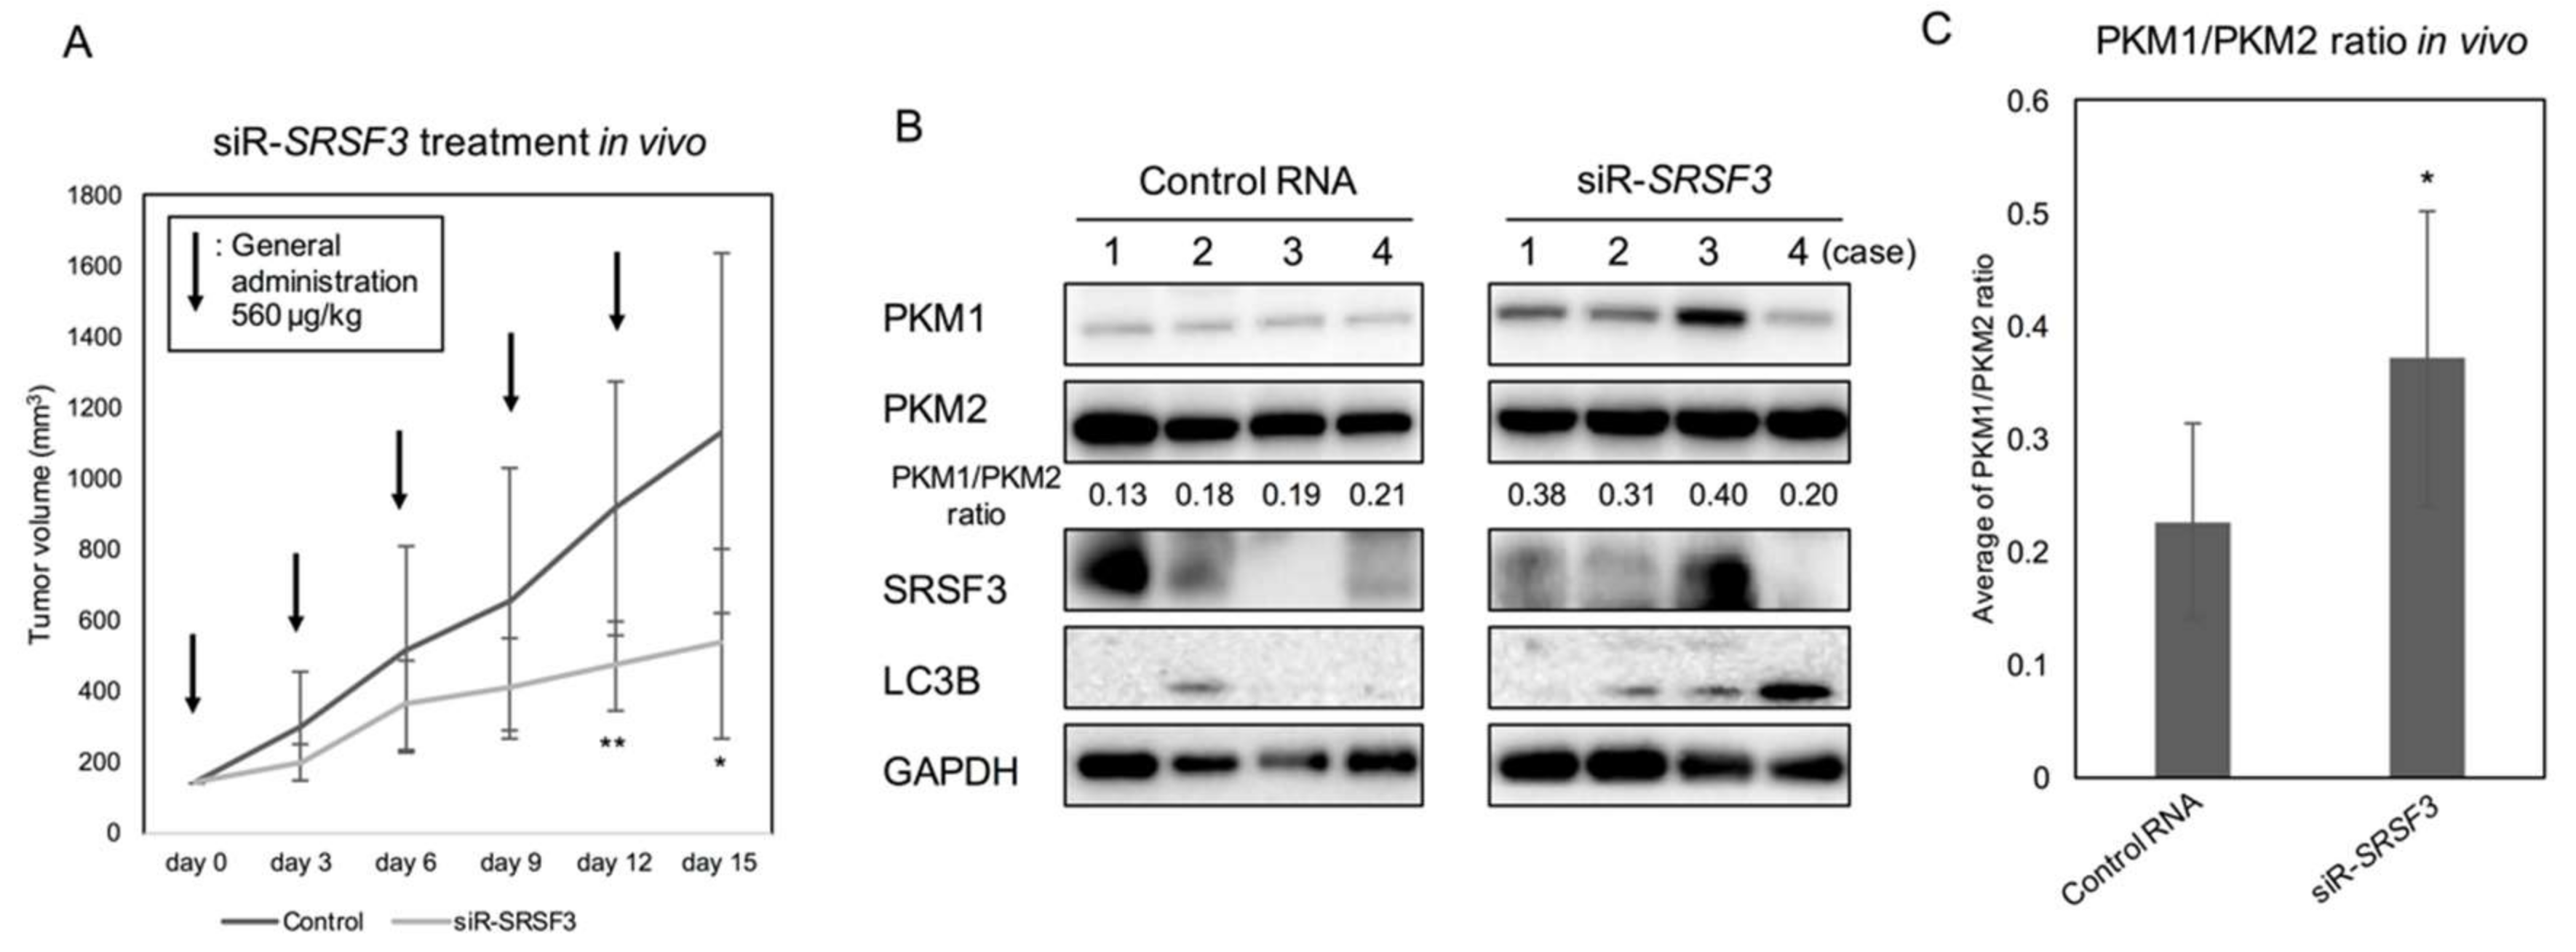 Ijms Free Full Text Srsf3 A Splicer Of The Pkm Gene Regulates Cell Growth And Maintenance Of Cancer Specific Energy Metabolism In Colon Cancer Cells Html